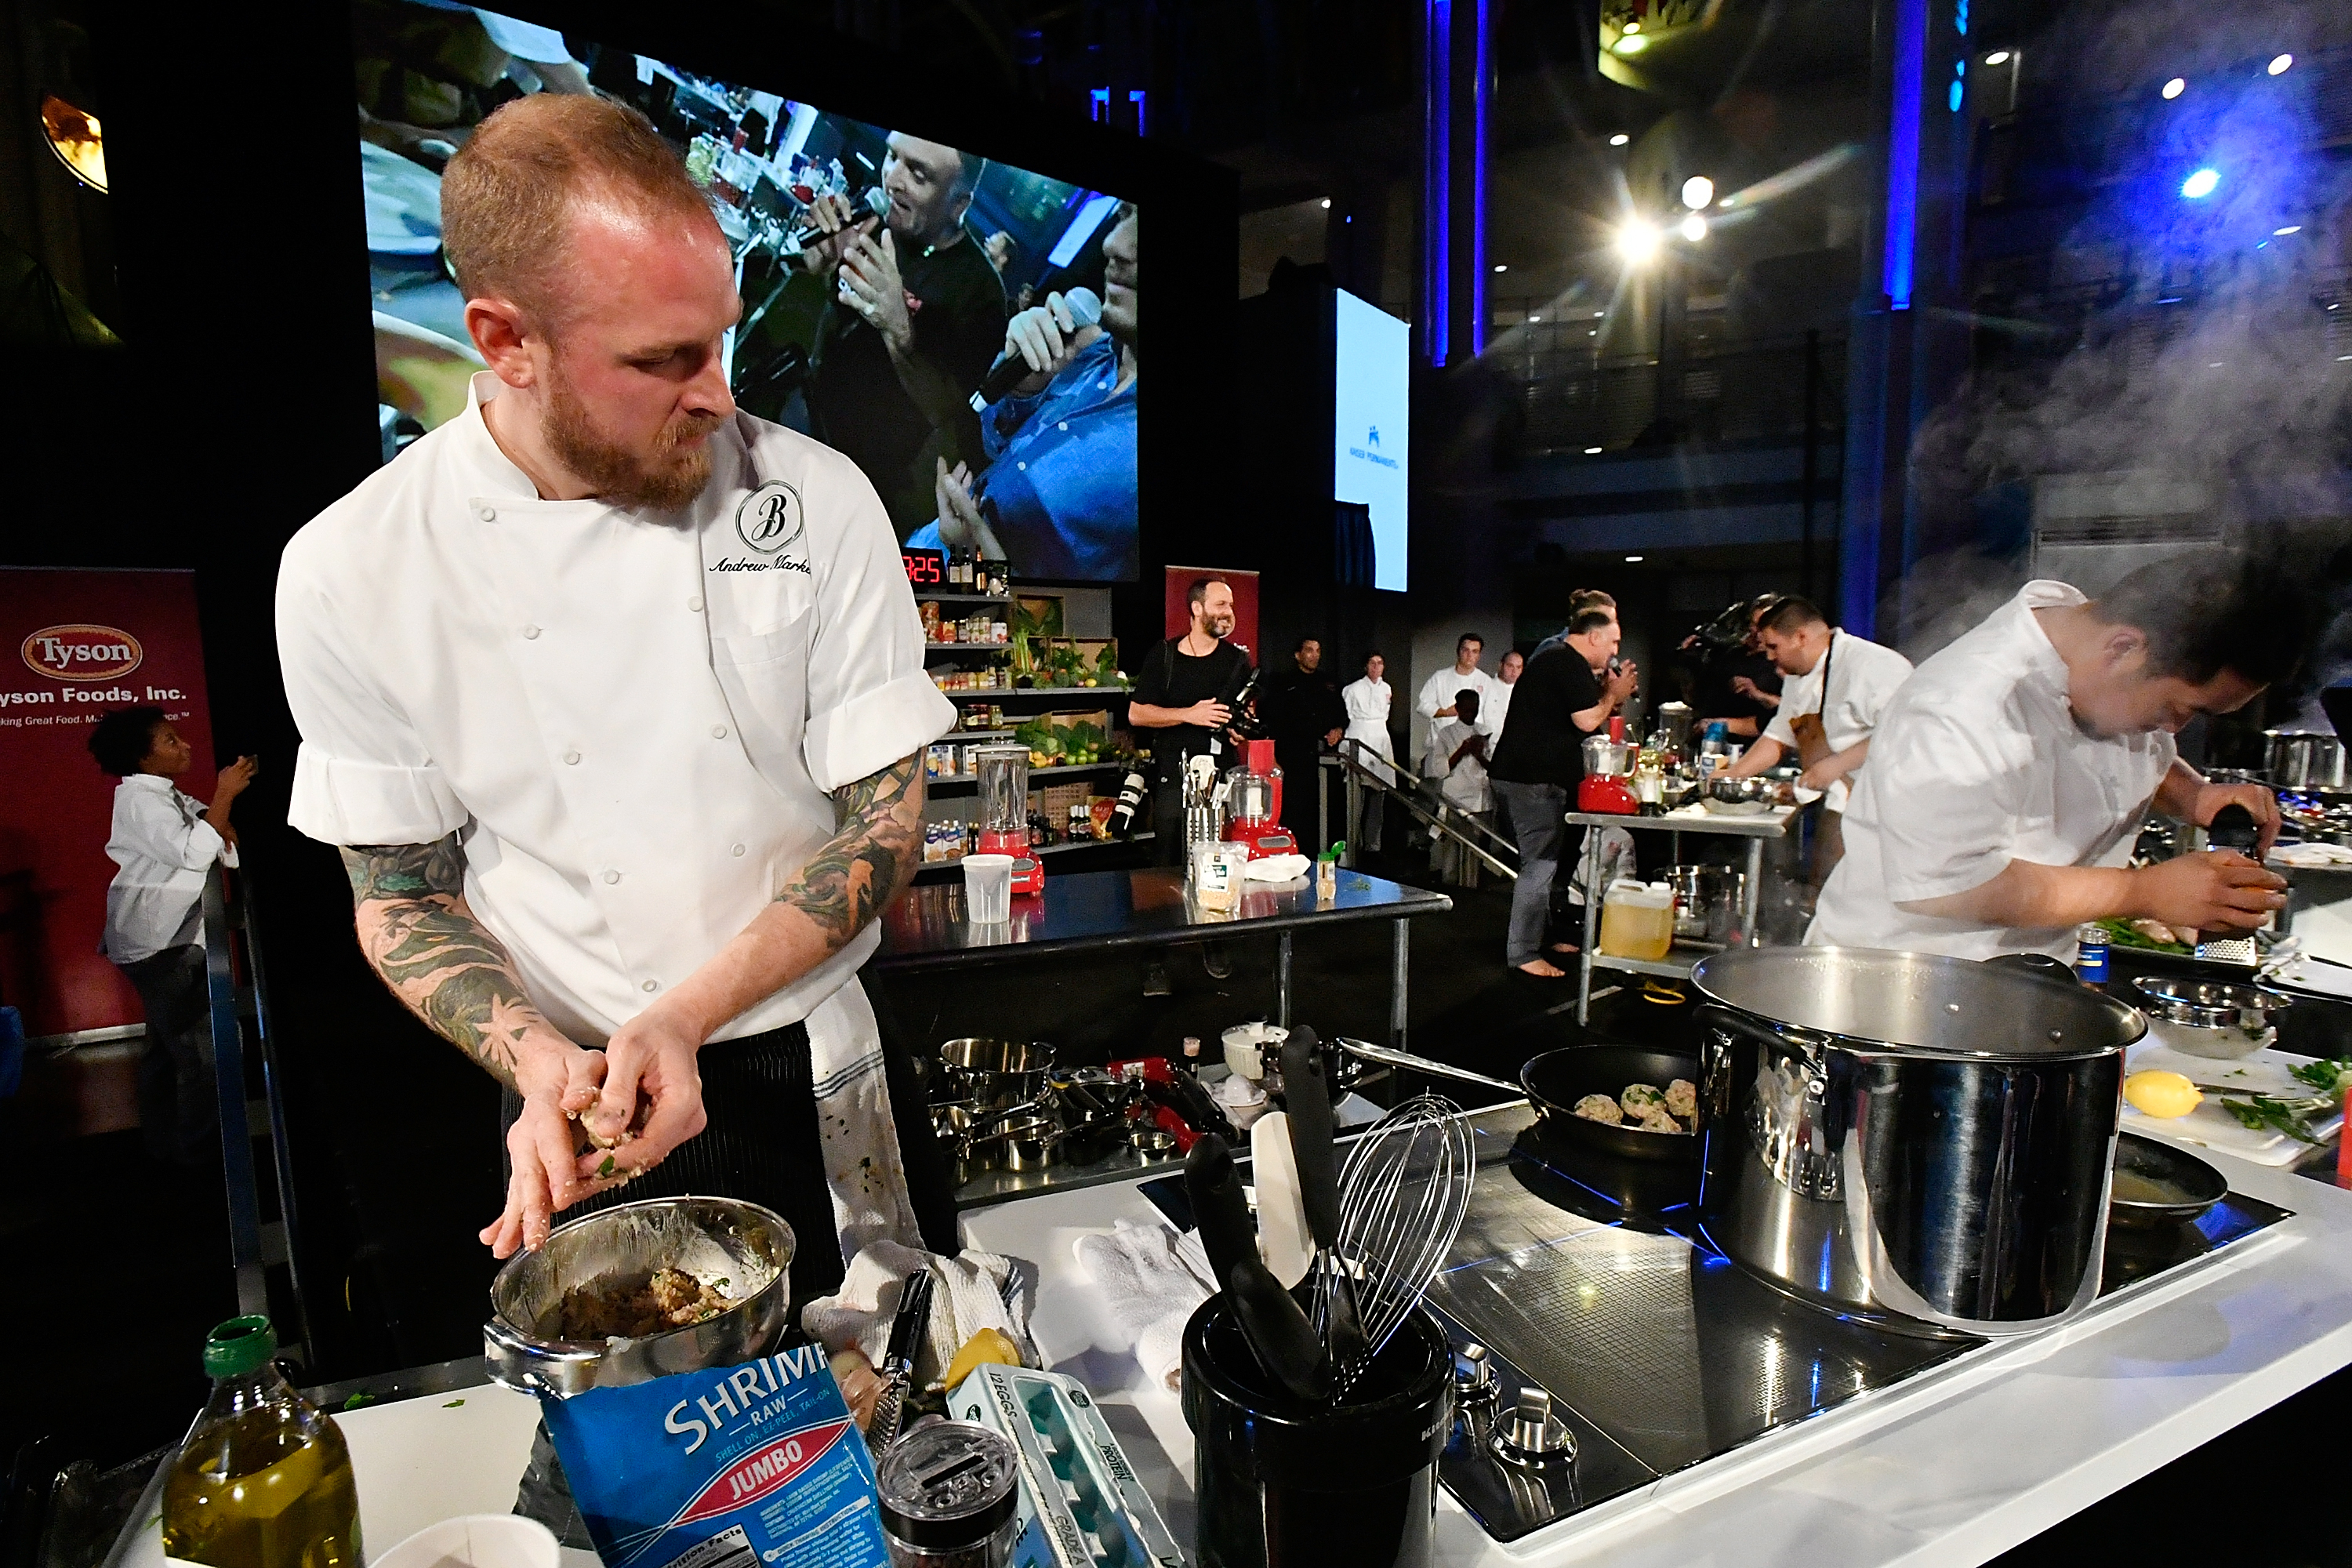 DC Central Kitchen's Capital Food Fight